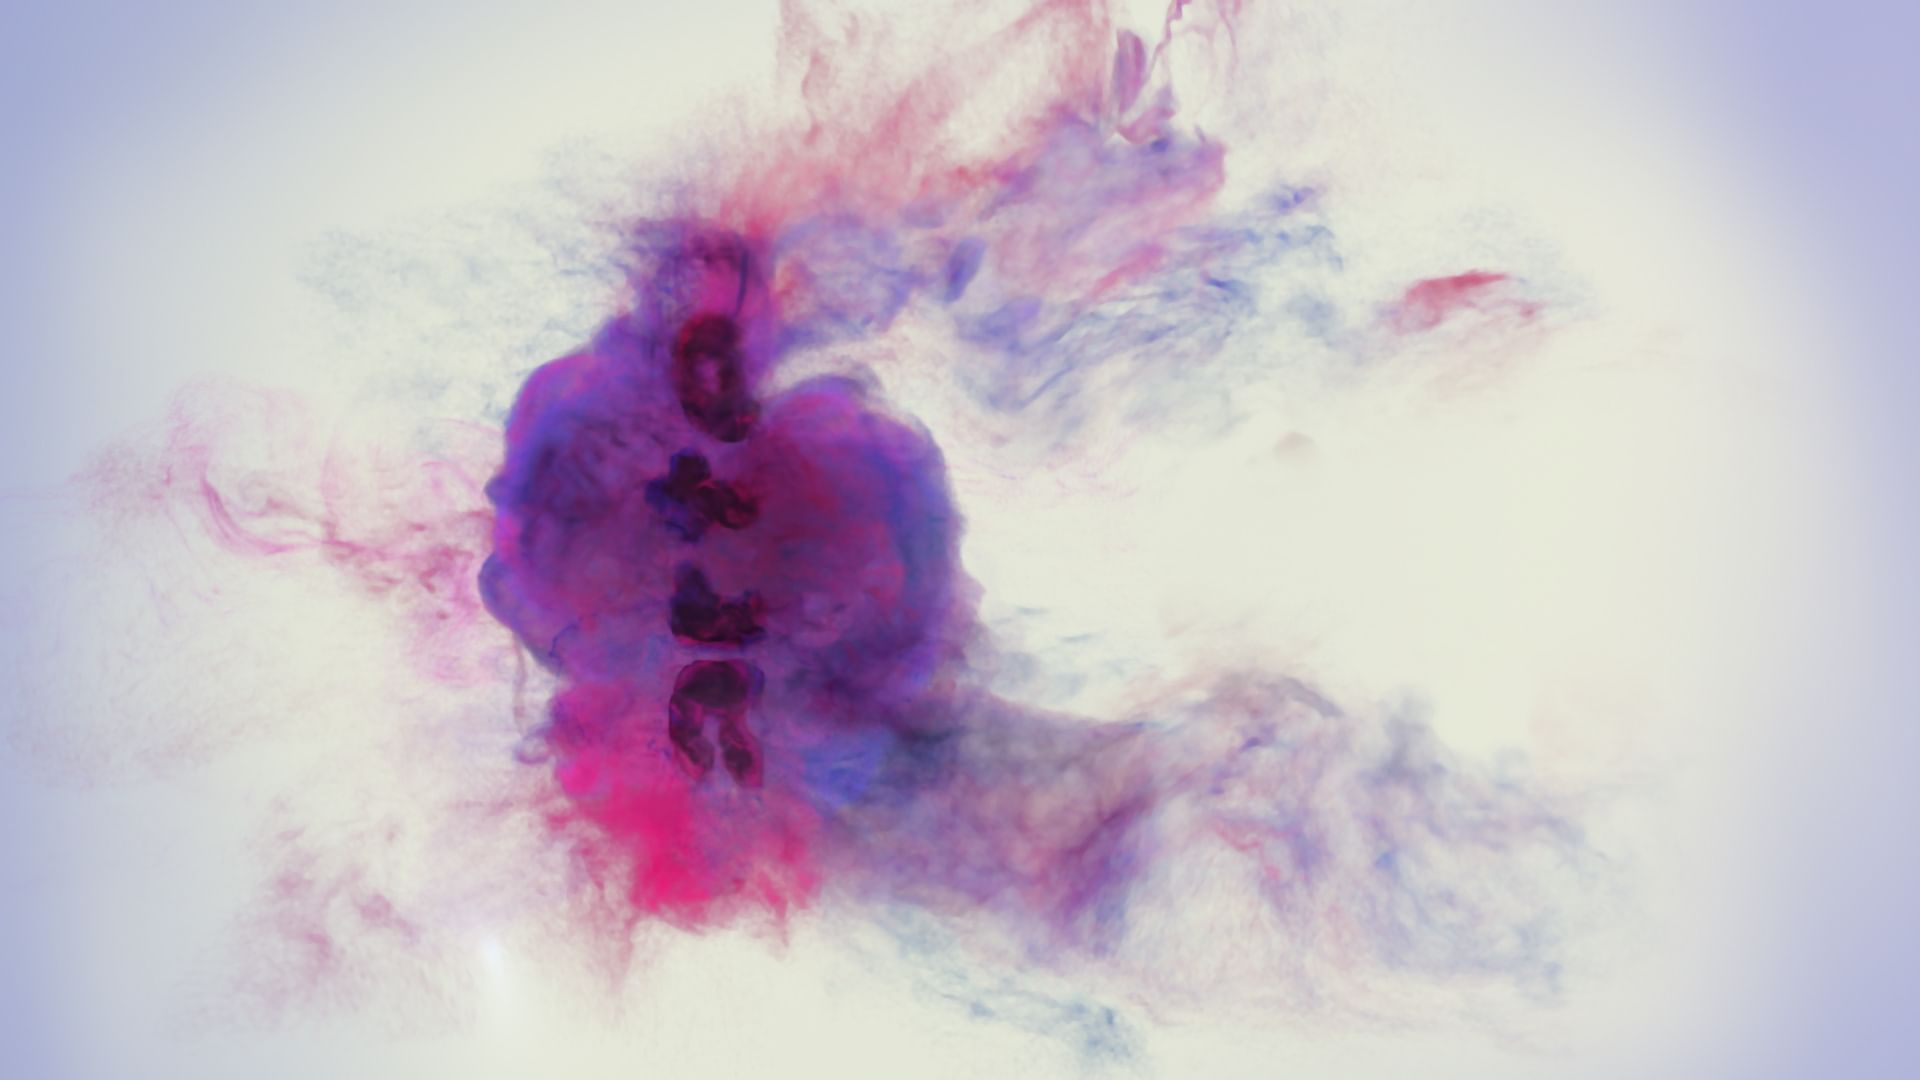 Norman Rockwell Painting In White House